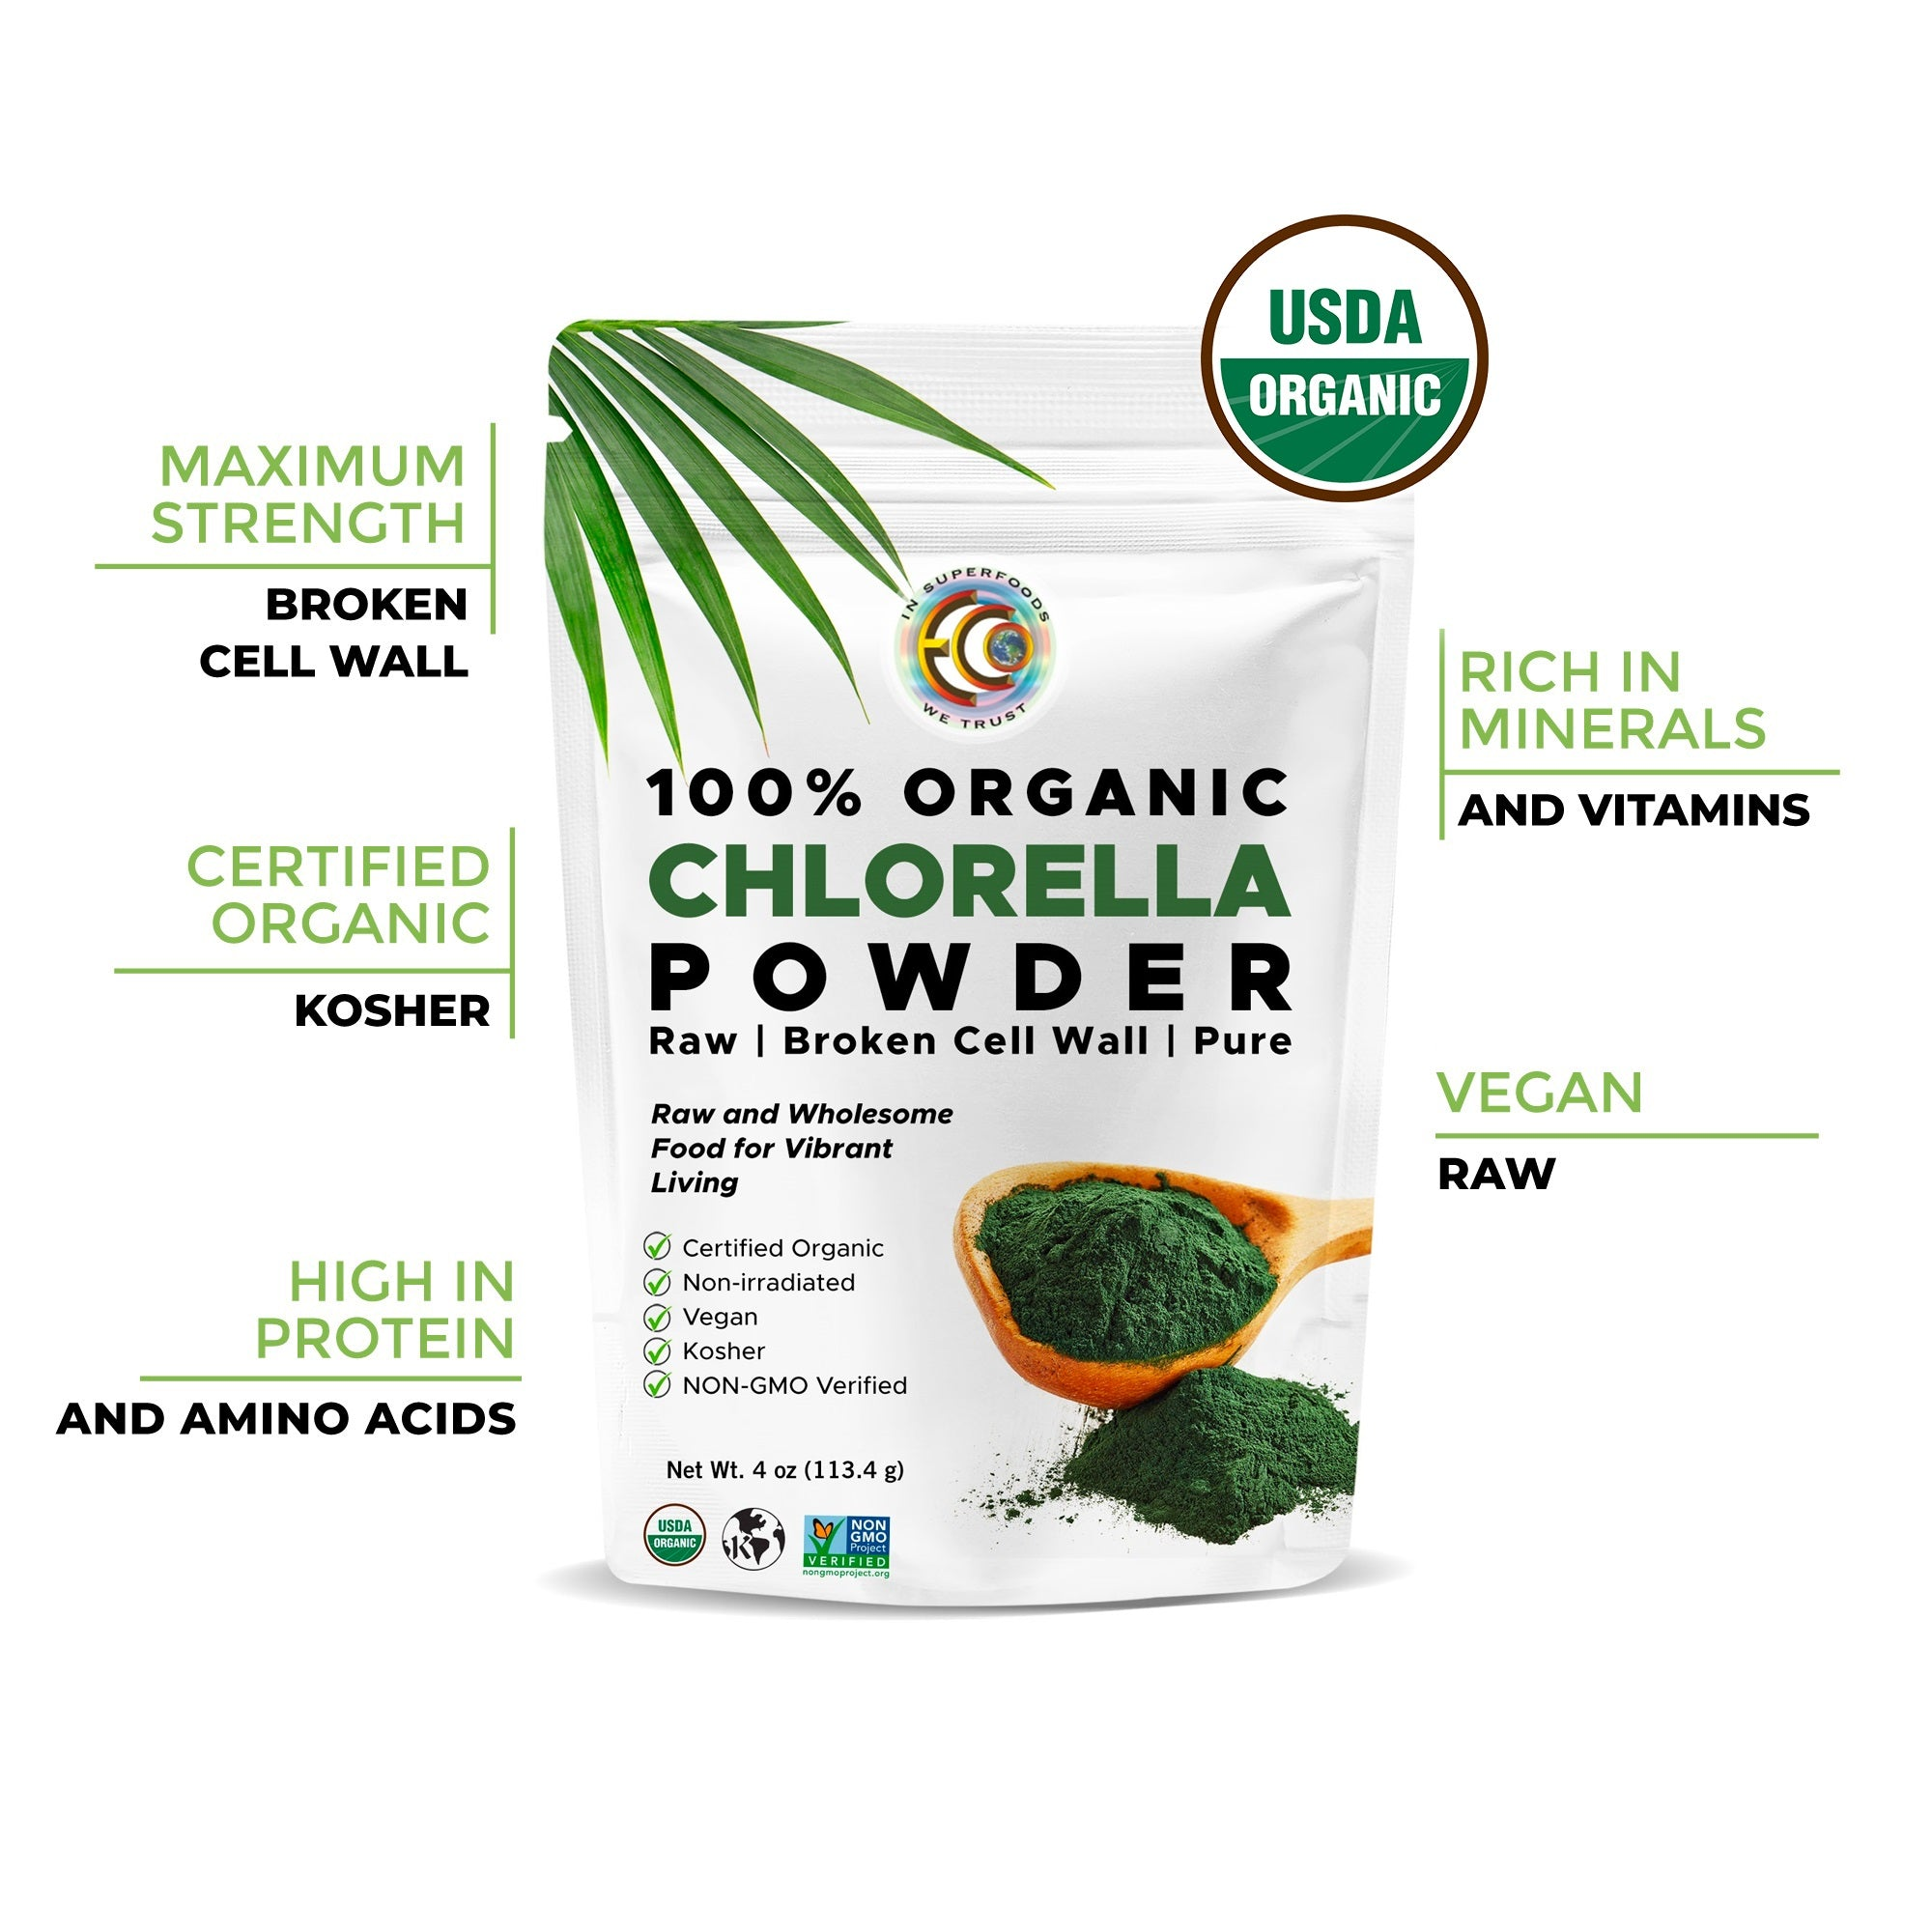 Chlorella powder | USDA Certified Organic | Raw | 4oz